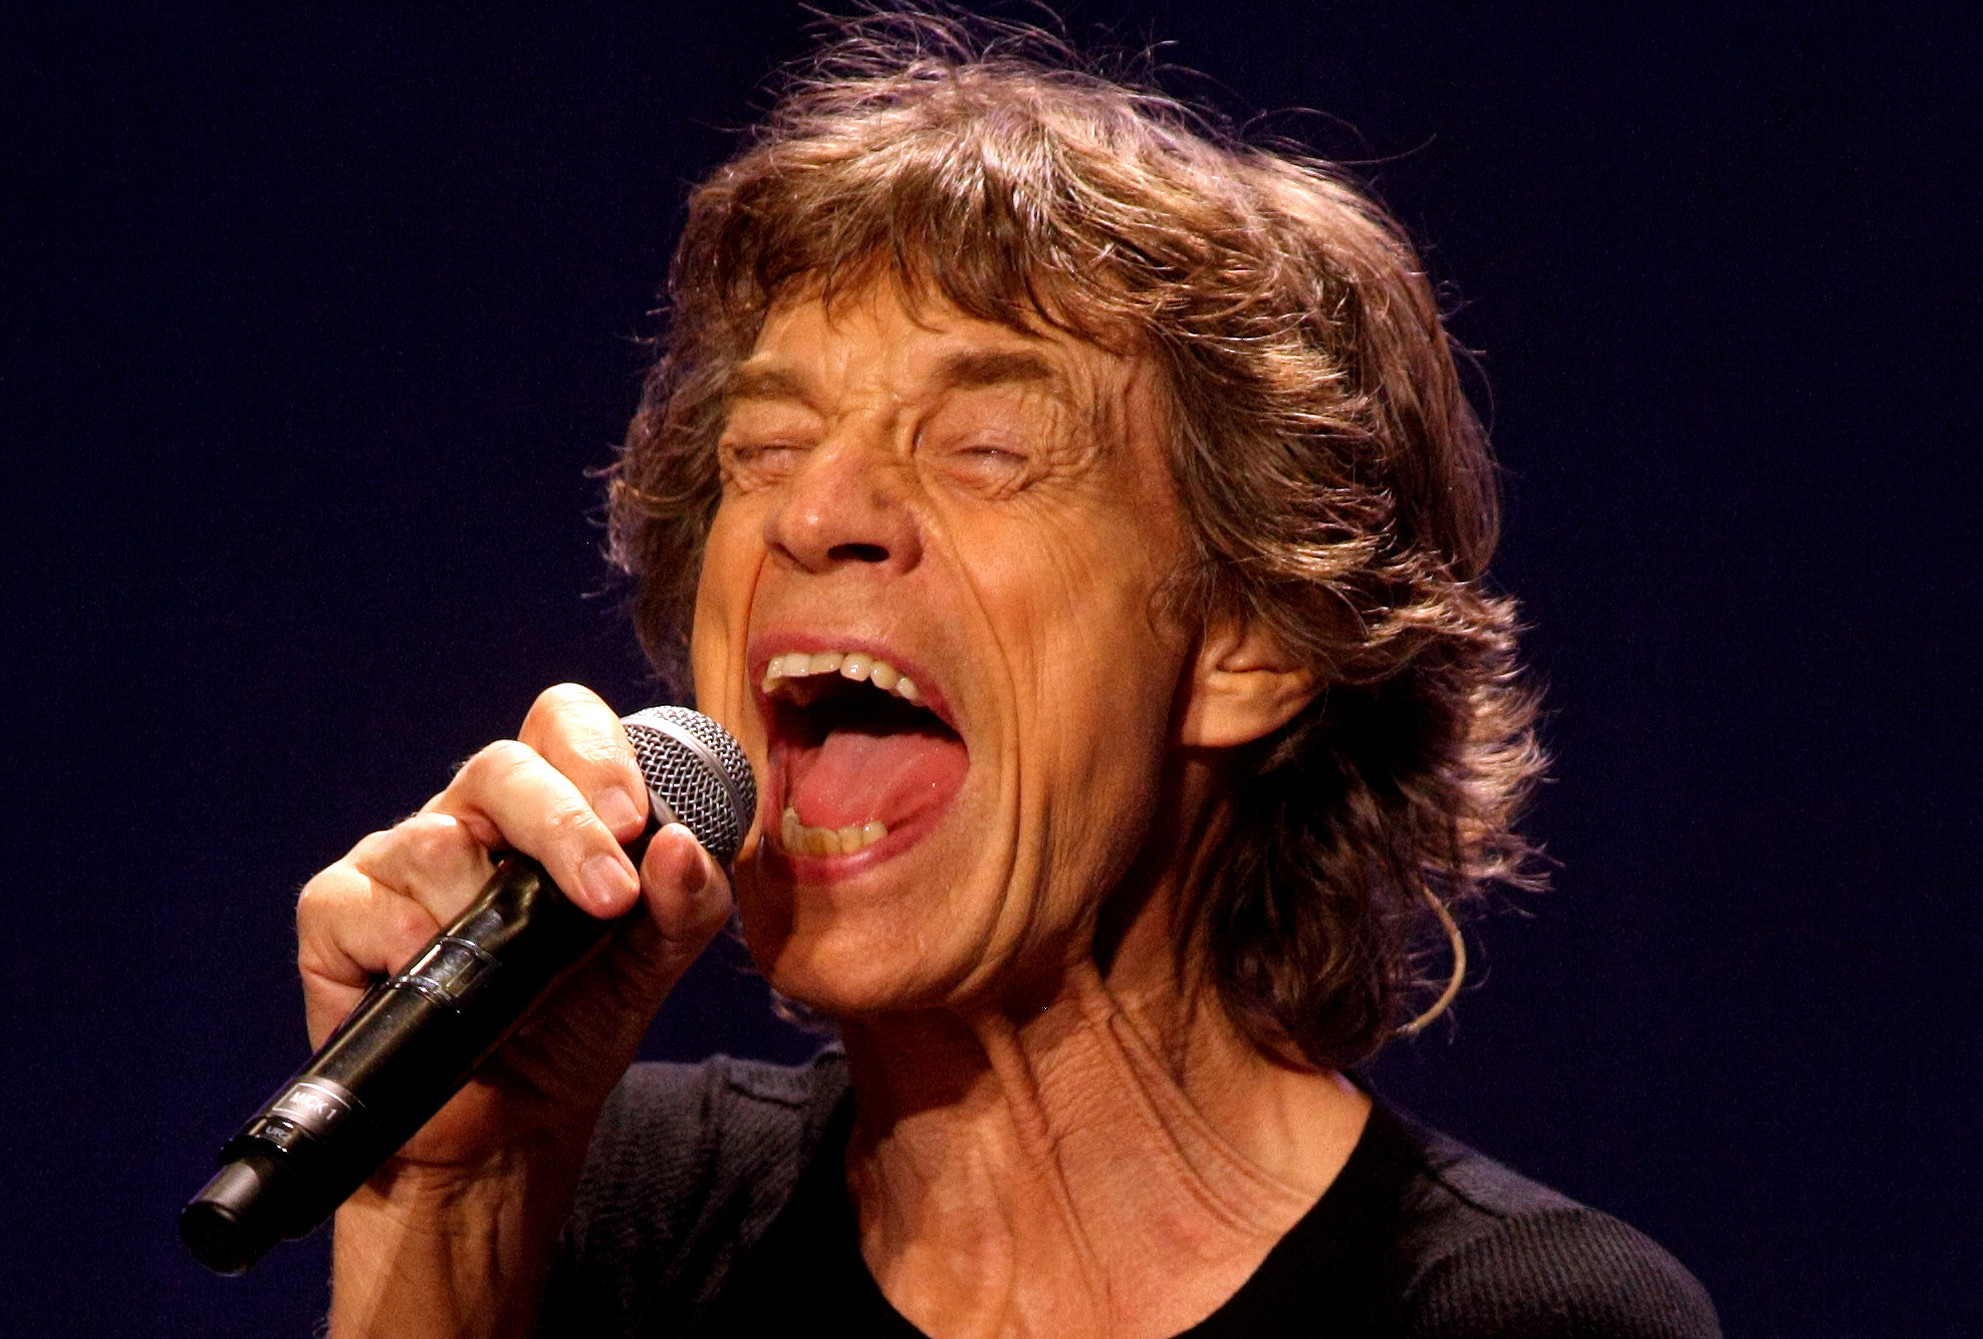 Mick Jagger: Mick Jagger Is A Great-grandfather -- But Don't Call Him